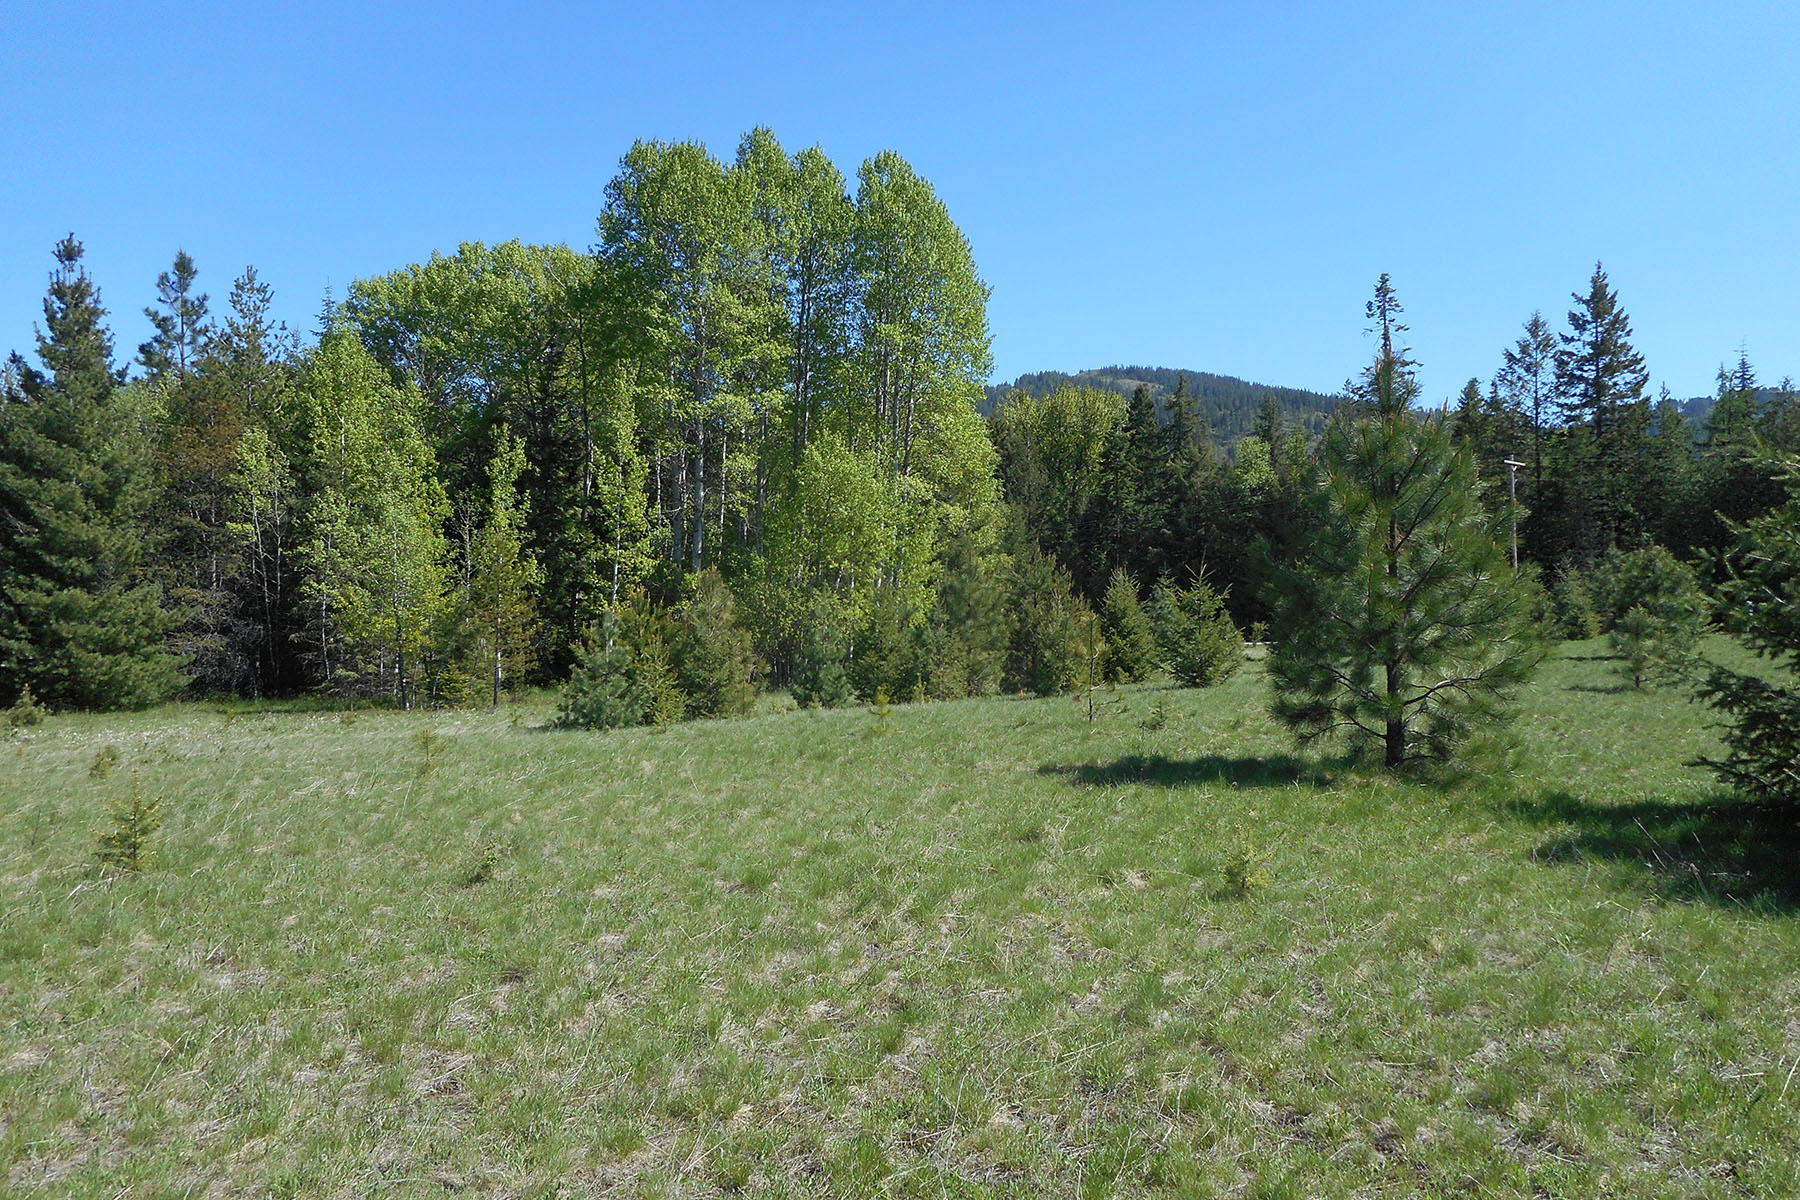 Additional photo for property listing at Pastoral 5 acres on paved road NNA Lot 5 Sagle Road Sagle, Idaho 83860 United States